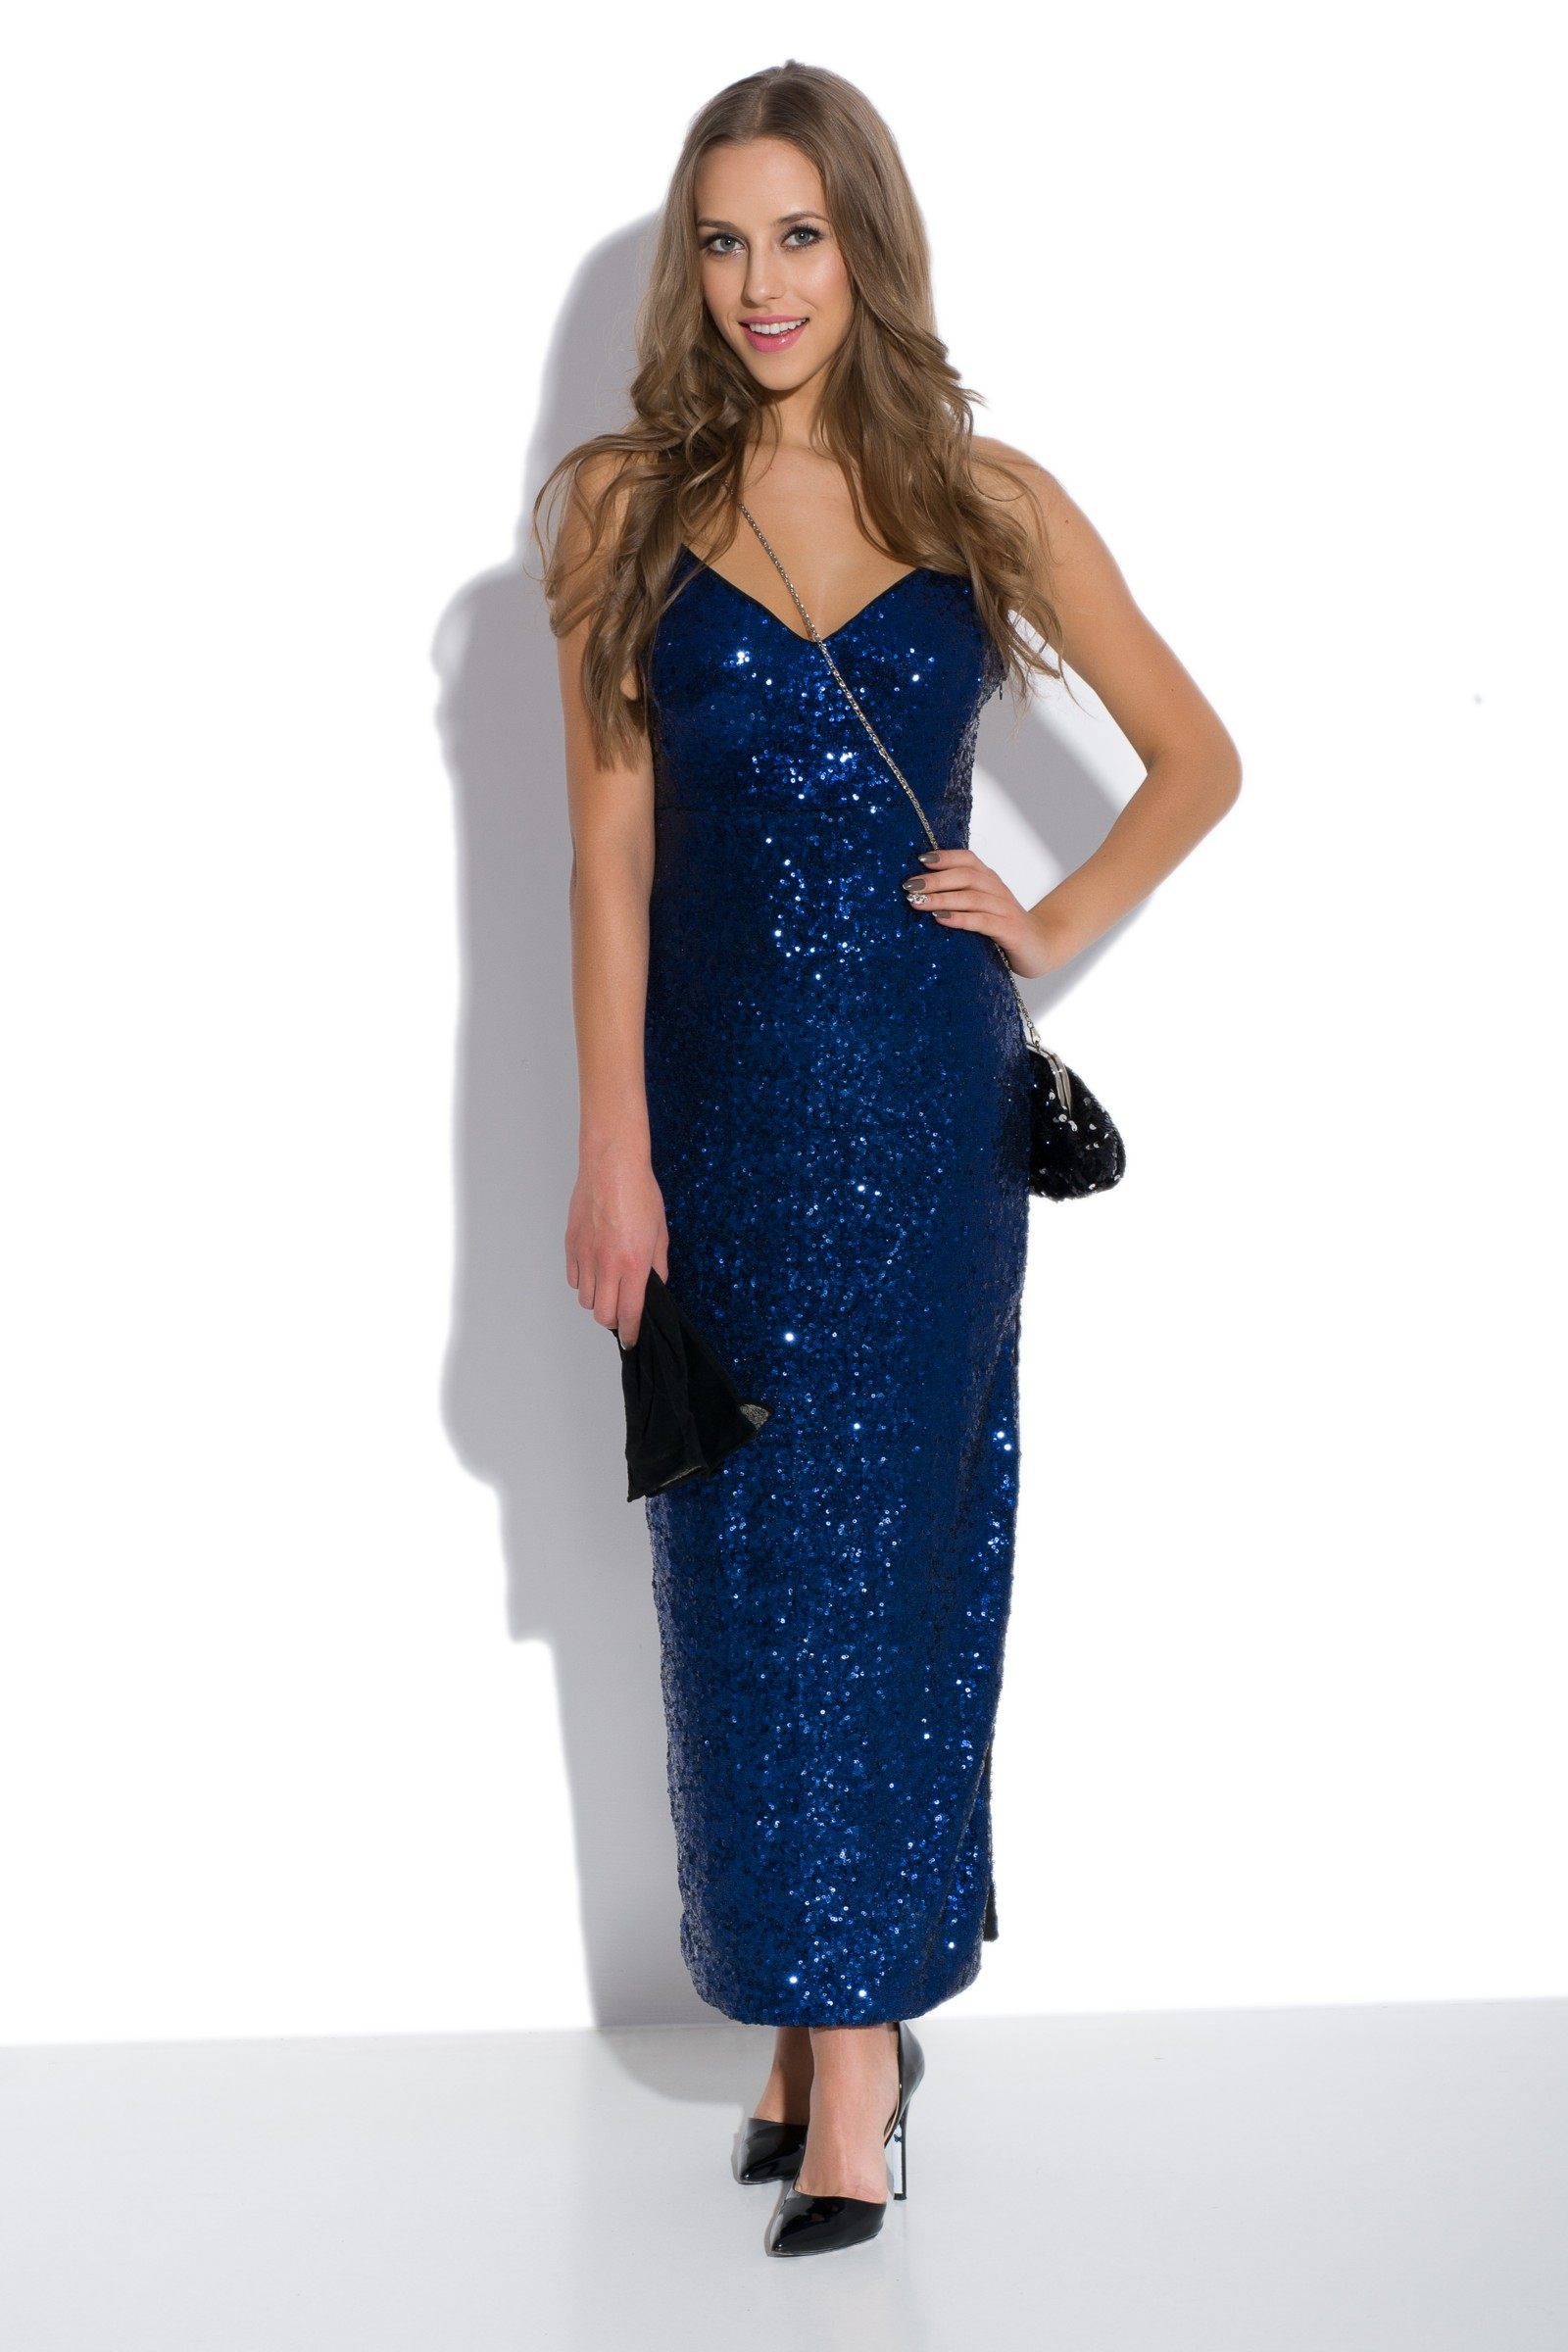 Sequin dress Queen of the Night on Storenvy 8e0c8edc6